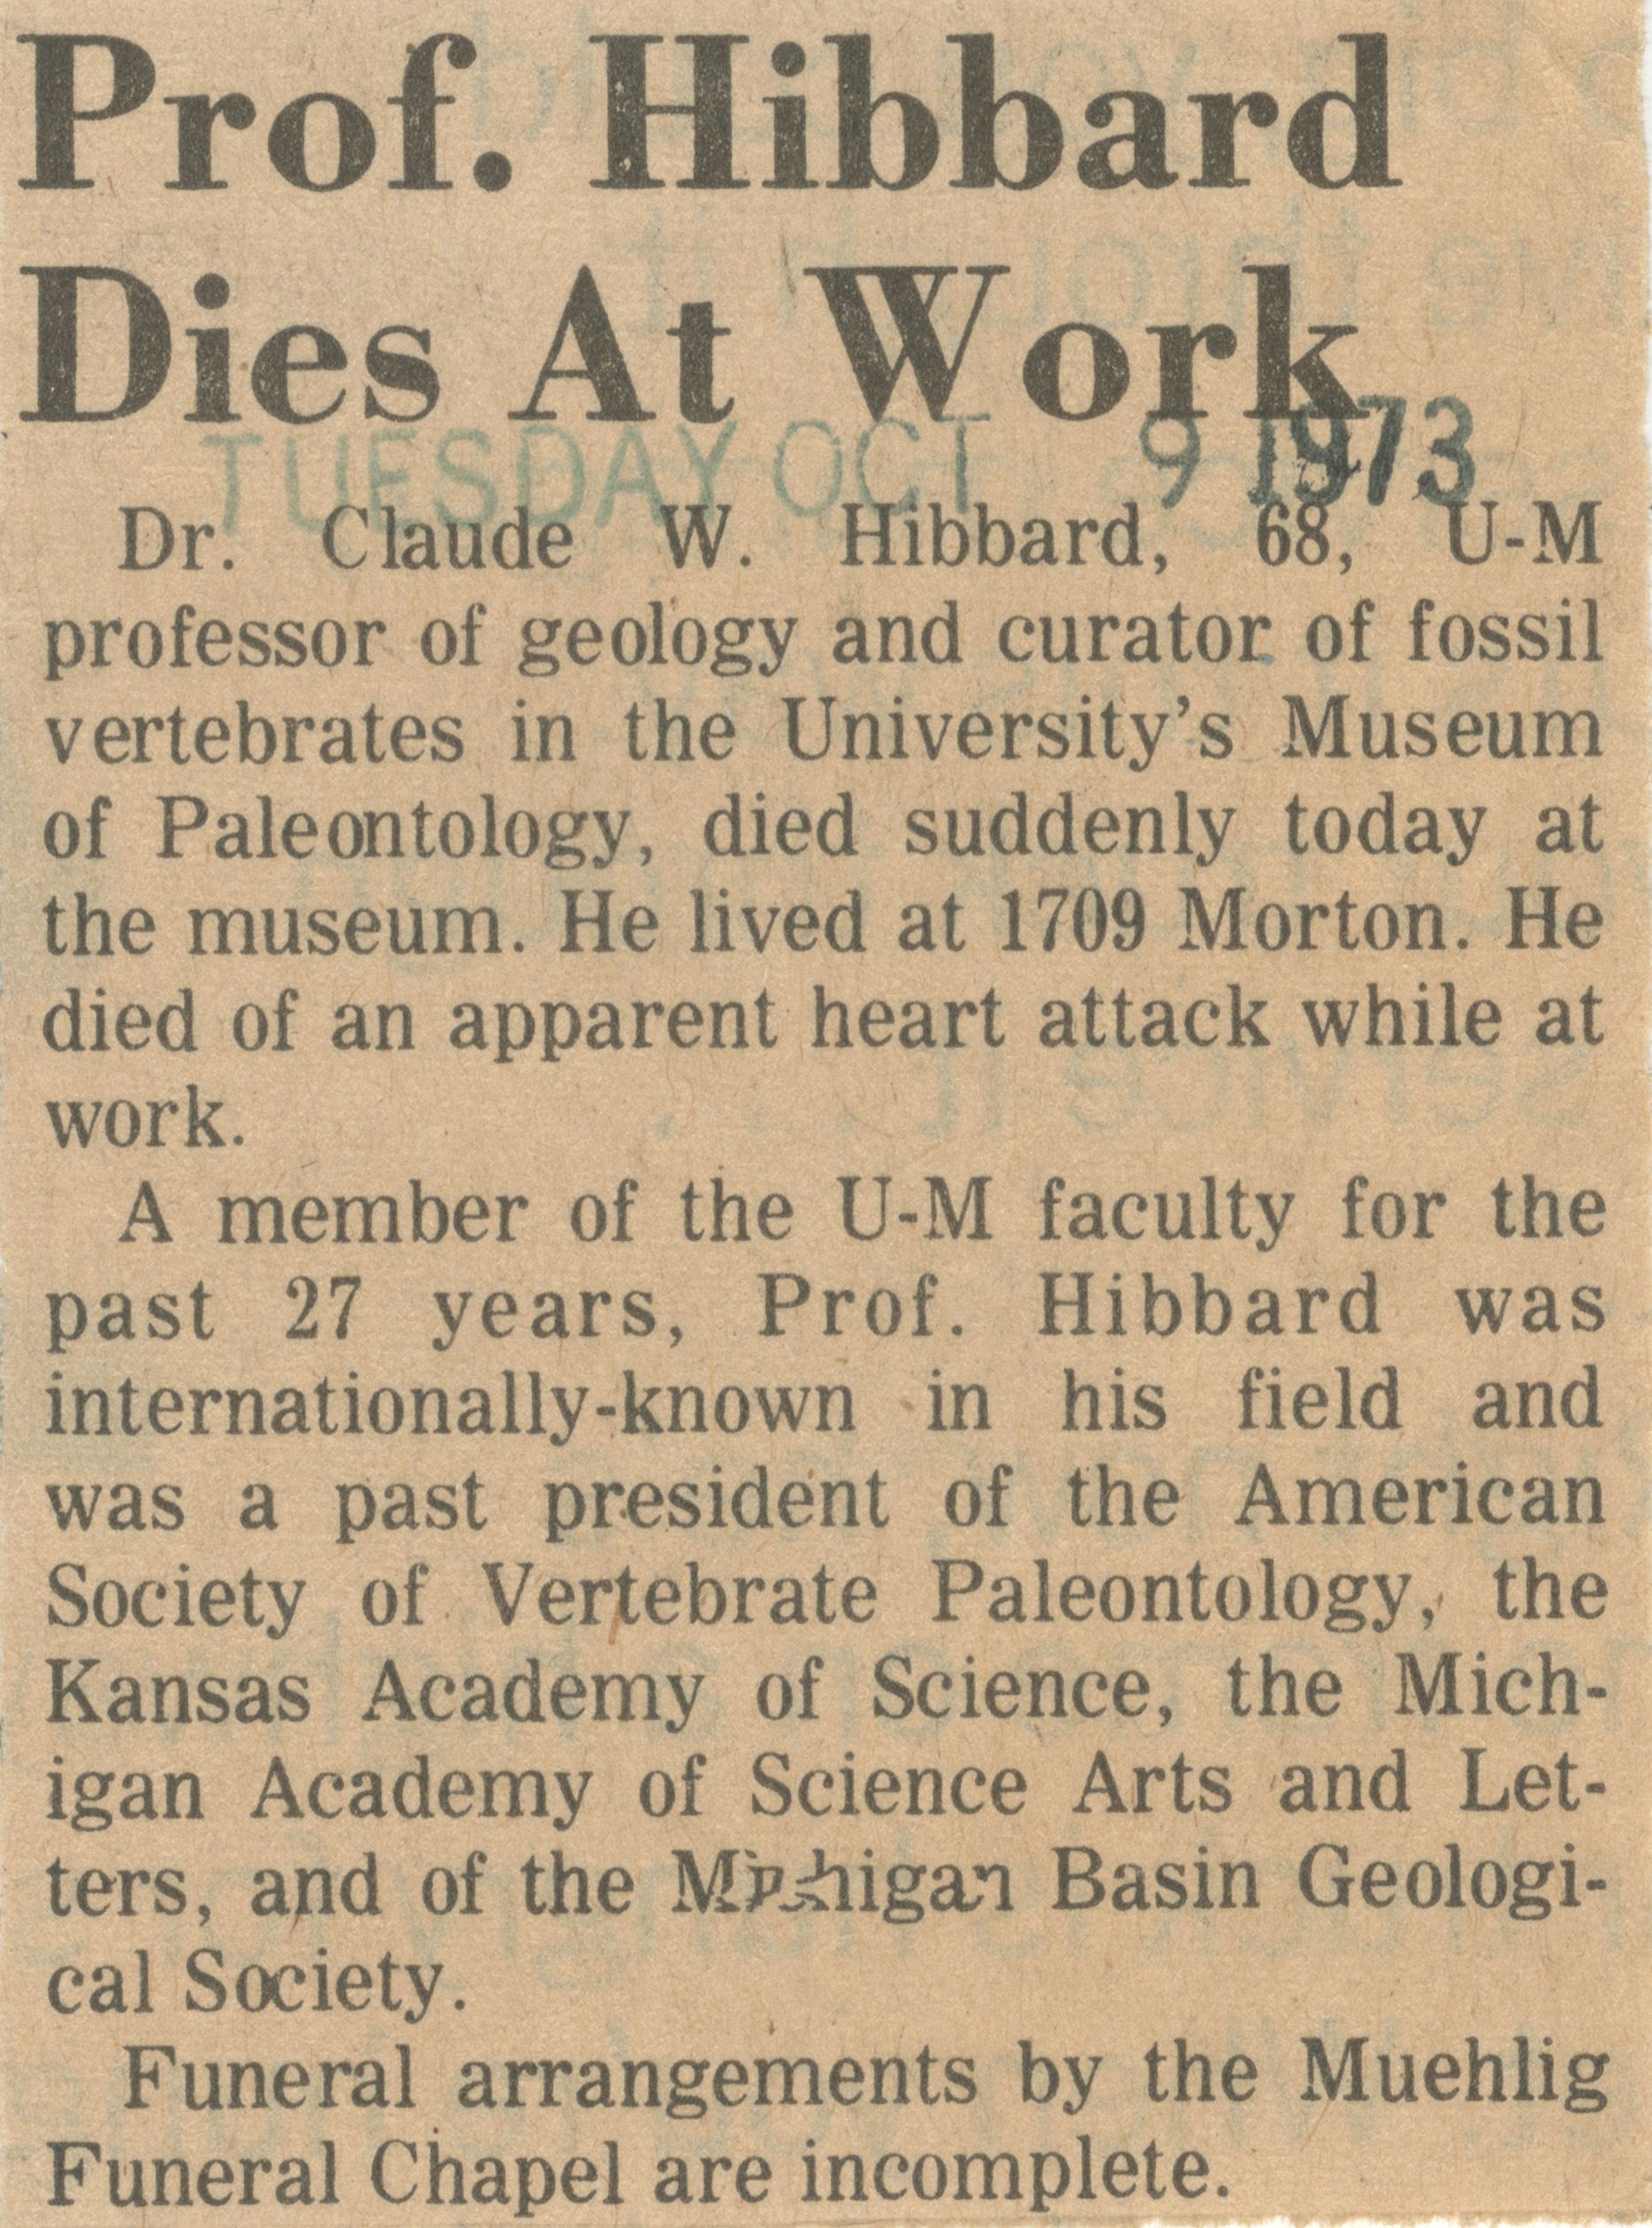 Prof. Hibbard Dies At Work image